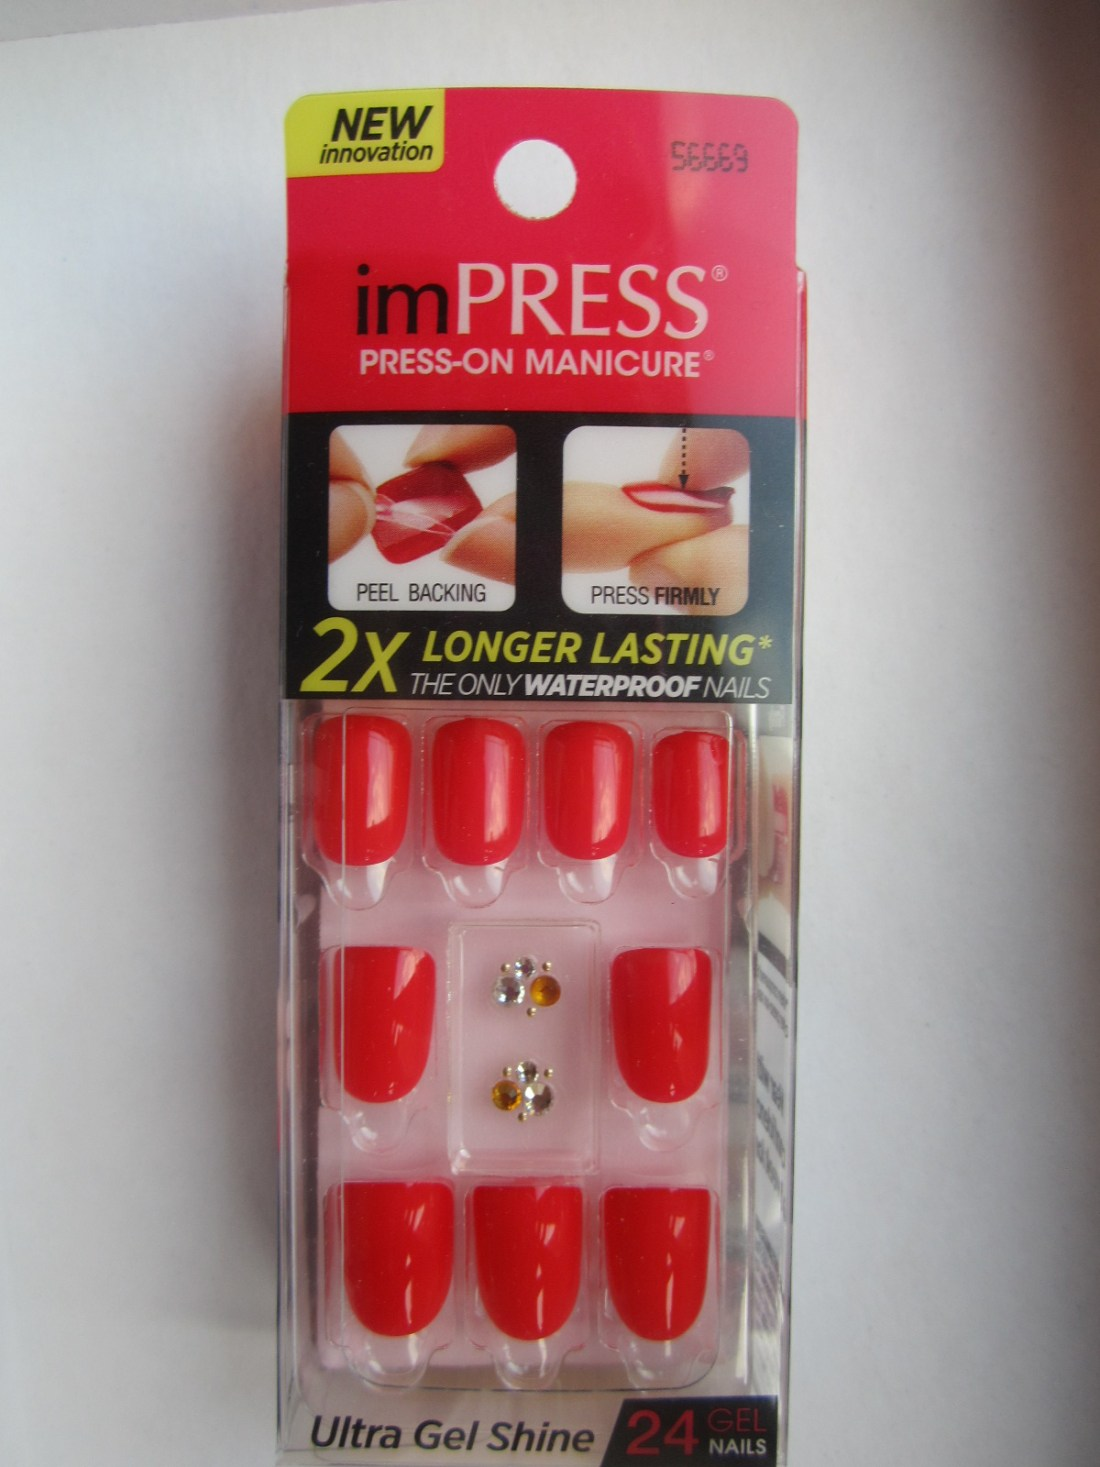 impress manicure press on nails